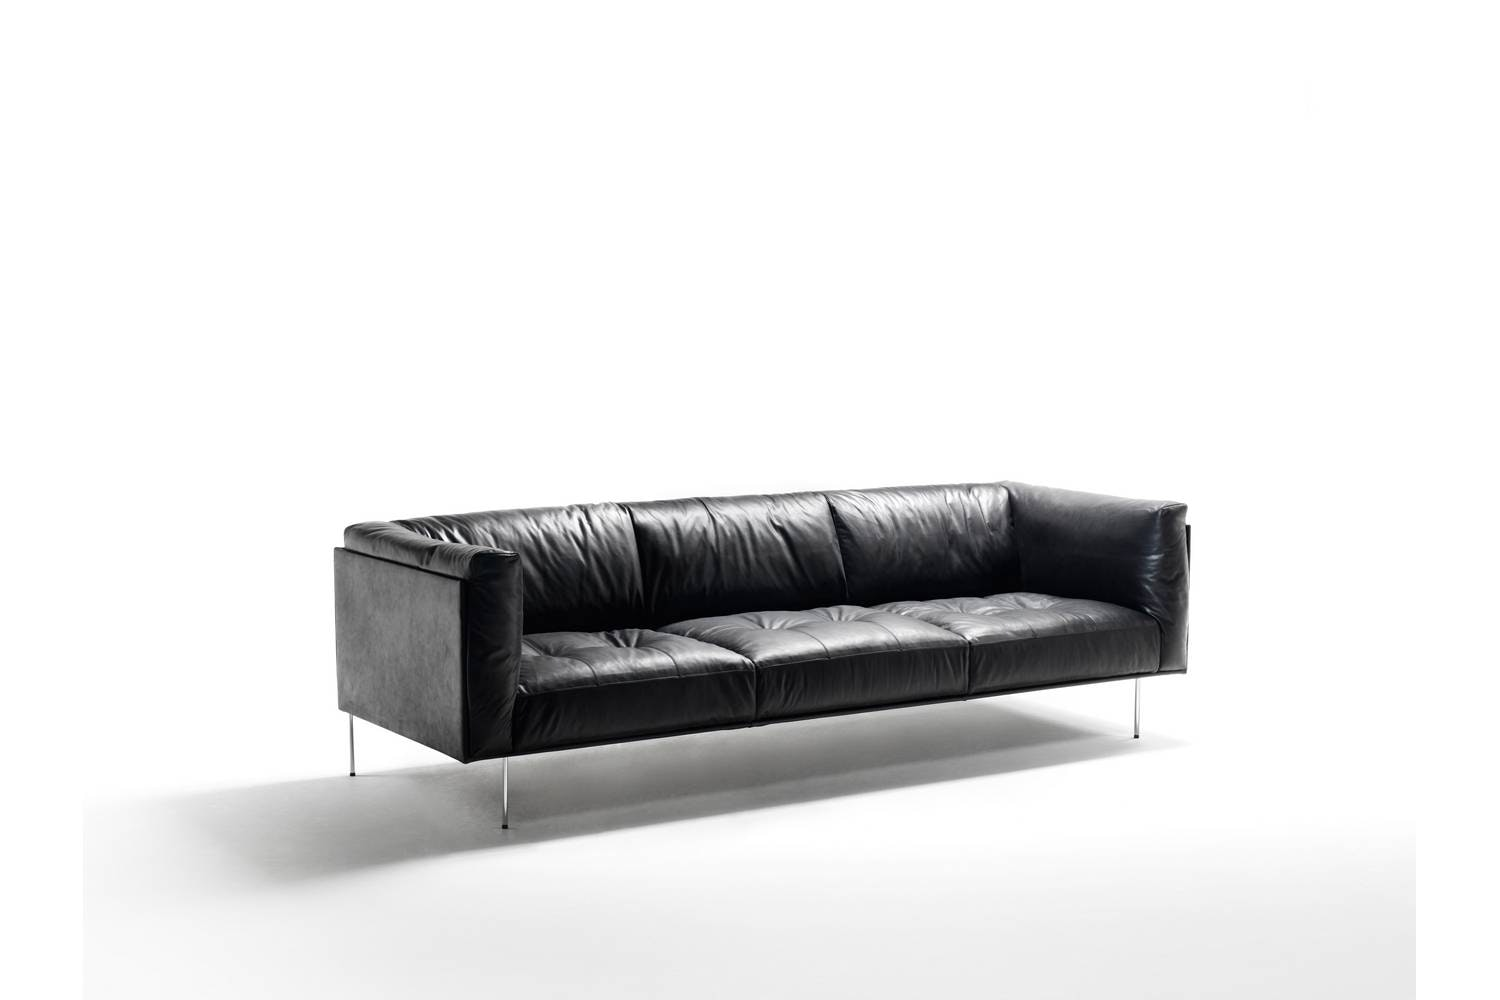 Rod Sofa by Piero Lissoni for Living Divani